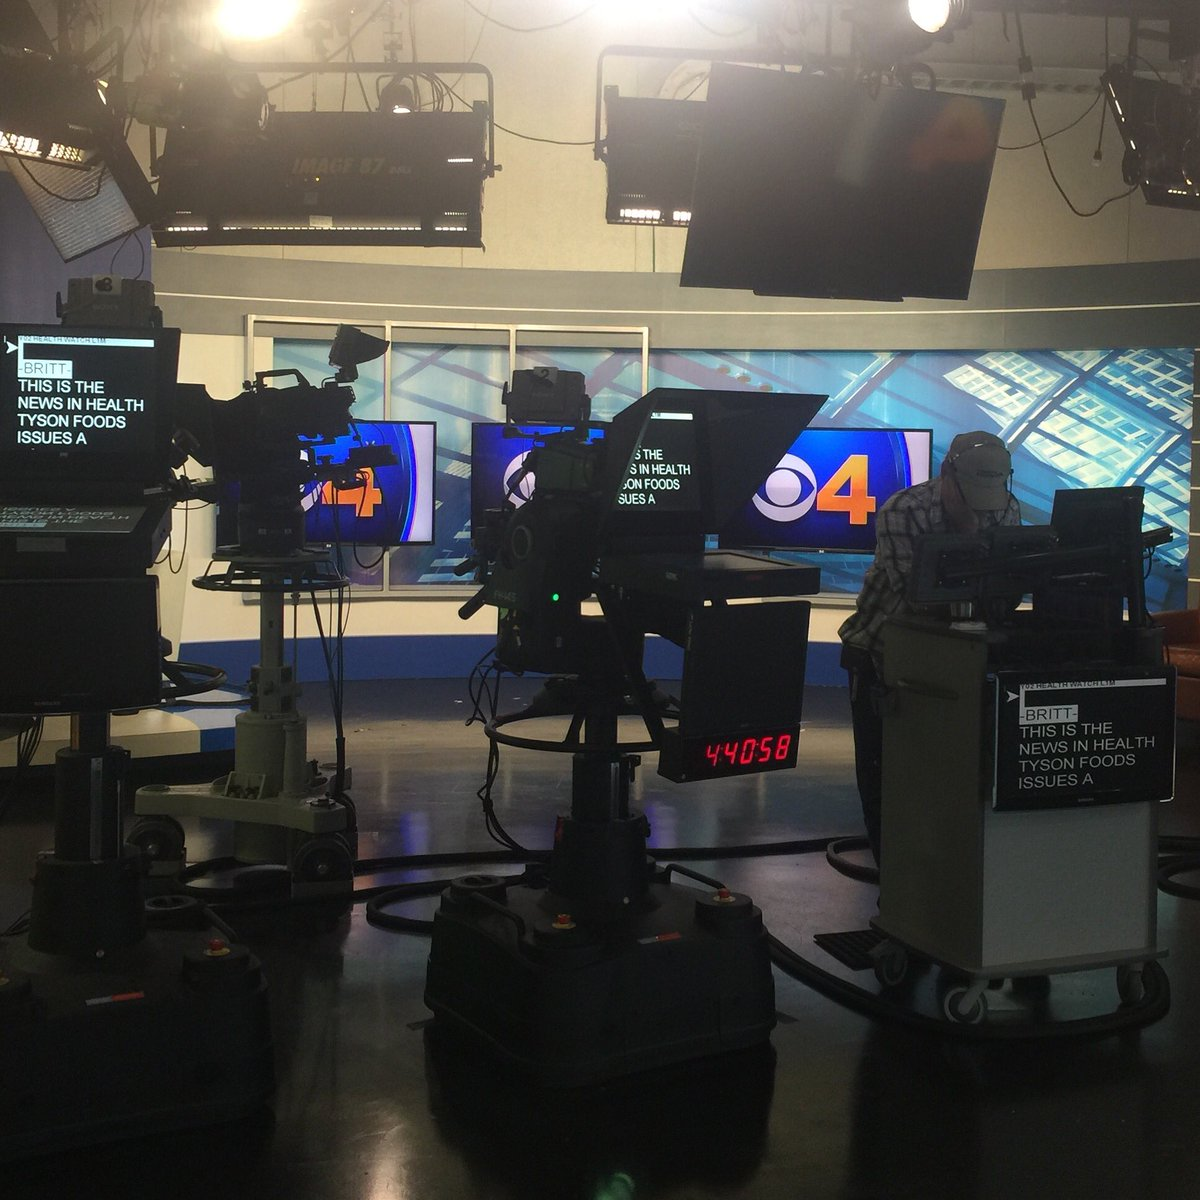 So many monitors in my world. Wake up with us today on CBS4! @cbsdenver CBS4Mornings attheoffice workpic